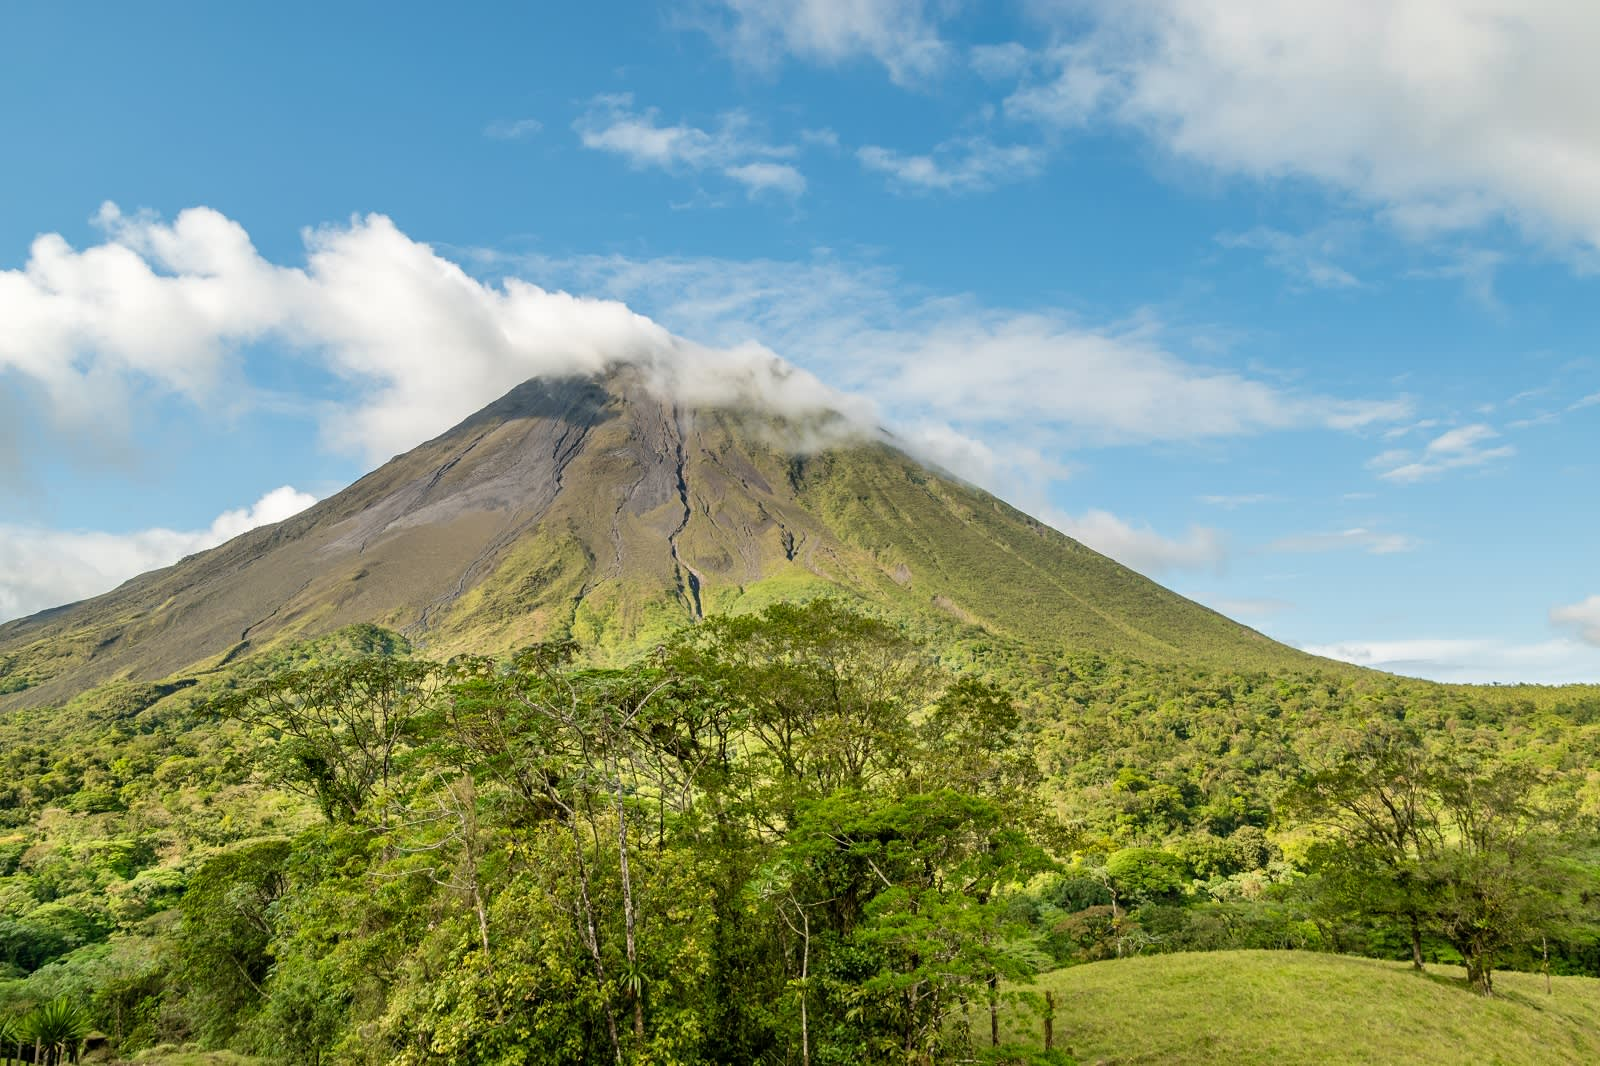 The Arenal volcano surrounded by clouds. This is an active volcano in tropical Costa Rica. The volcano slopes are covered in primary forest full of wildlife.